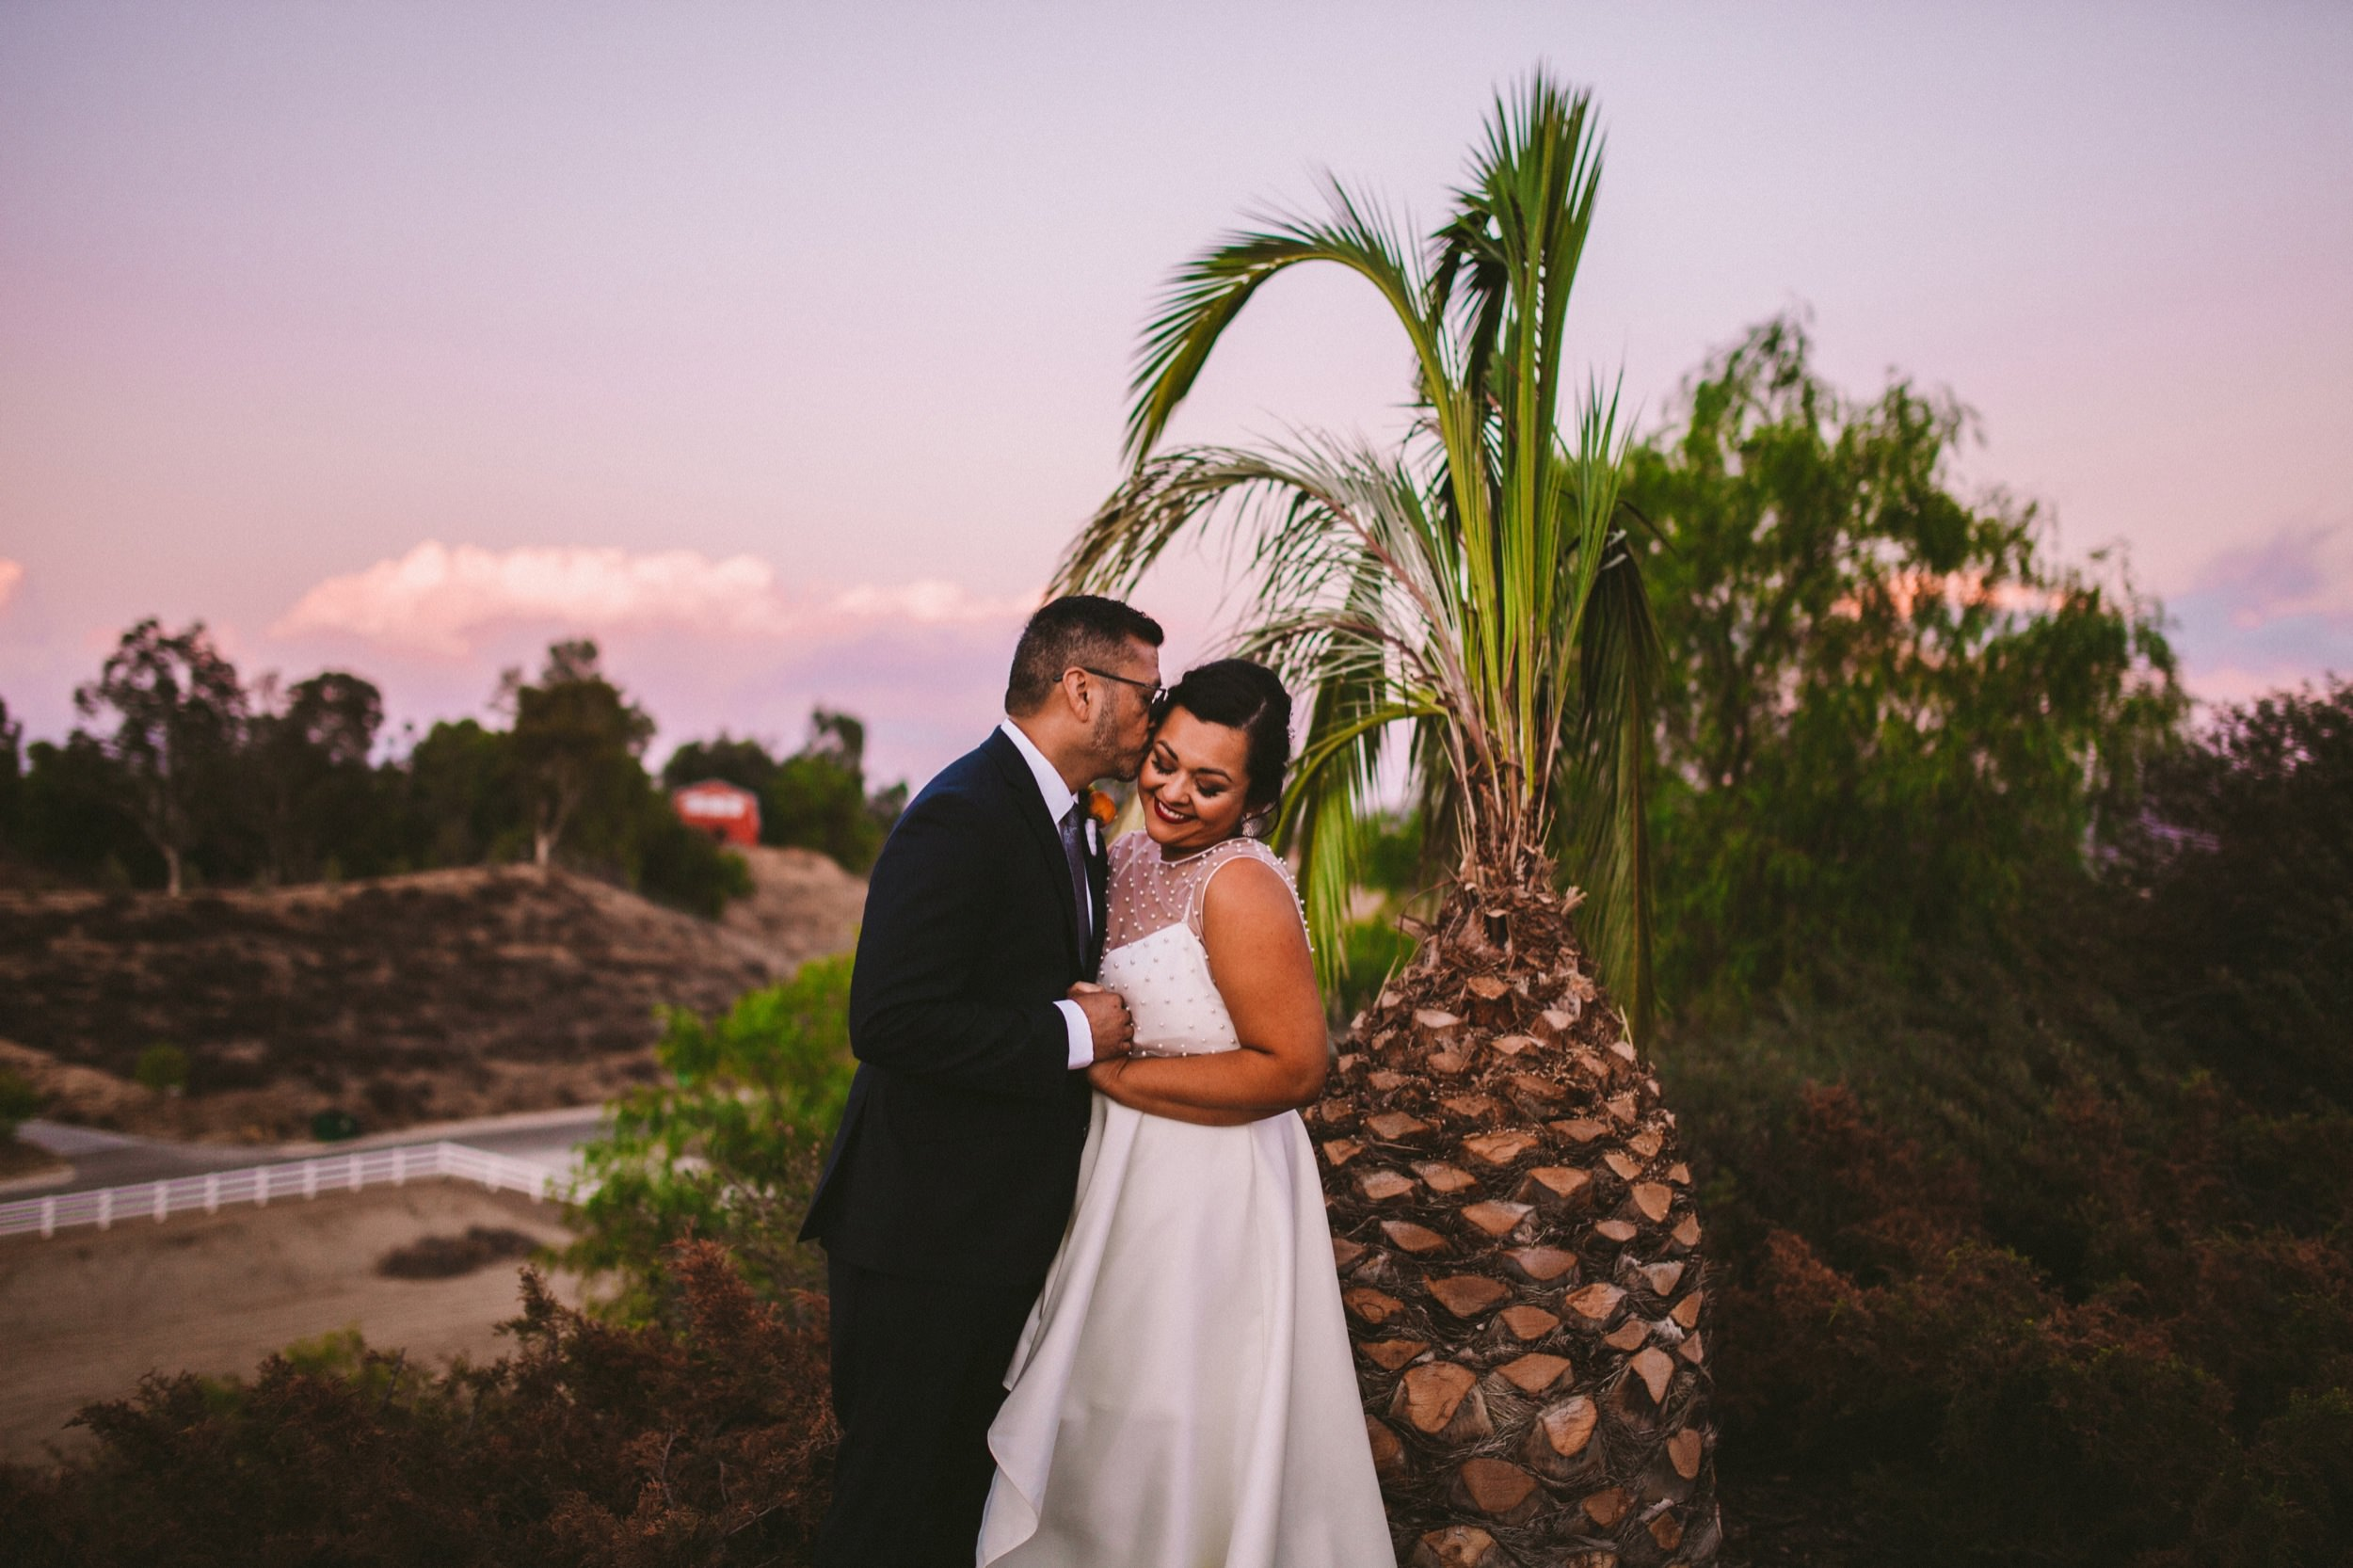 Intimate & colorful Temecula Documentary Wedding Photography-91.jpg